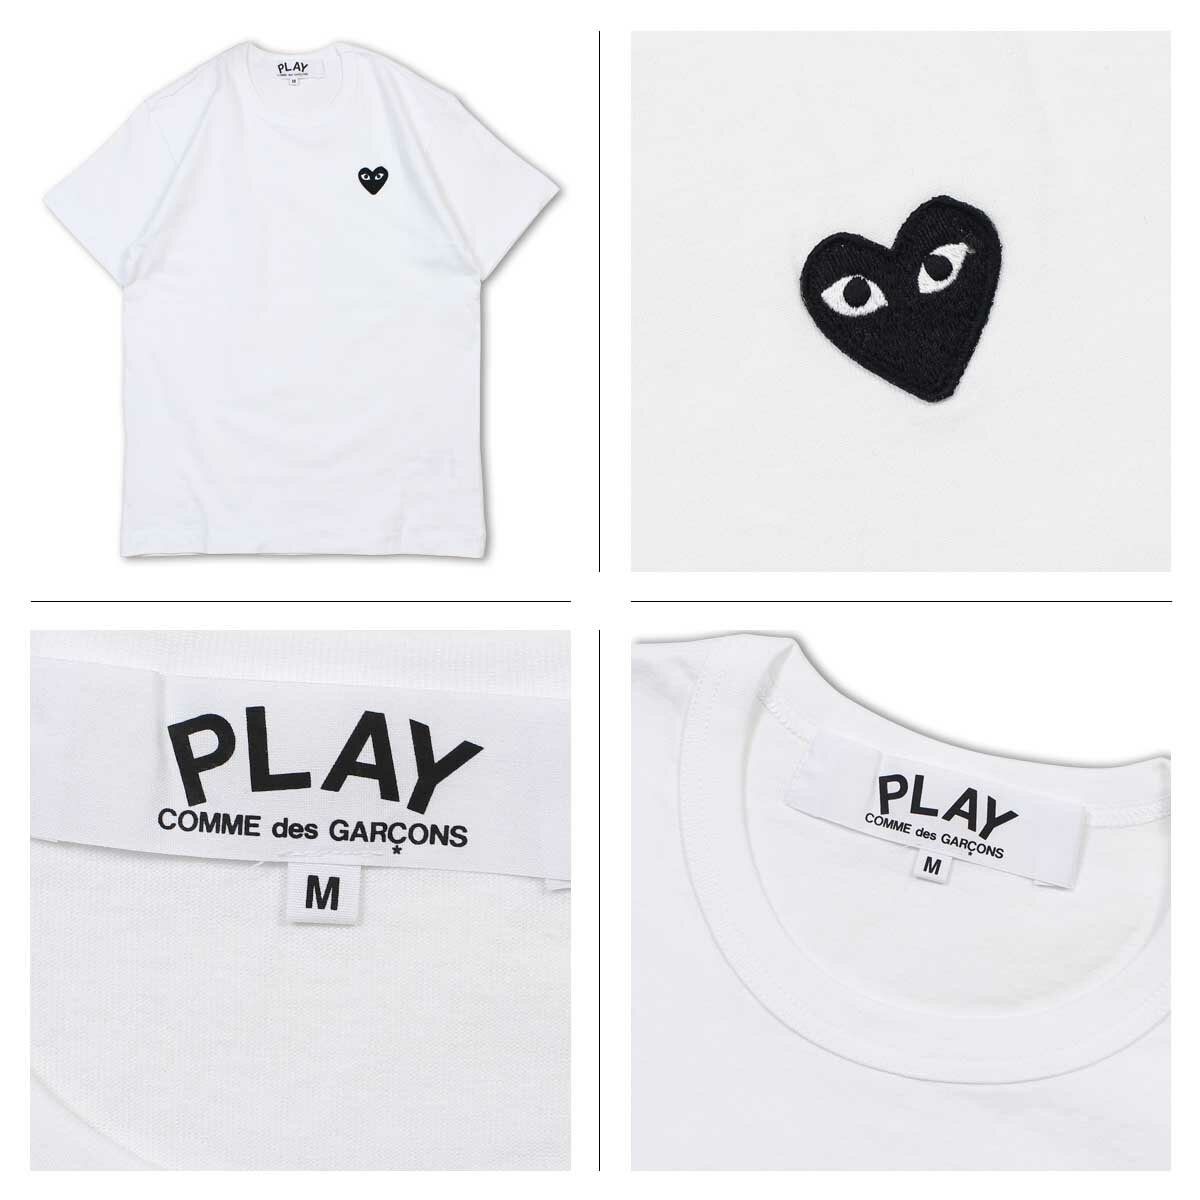 cdg shirt play